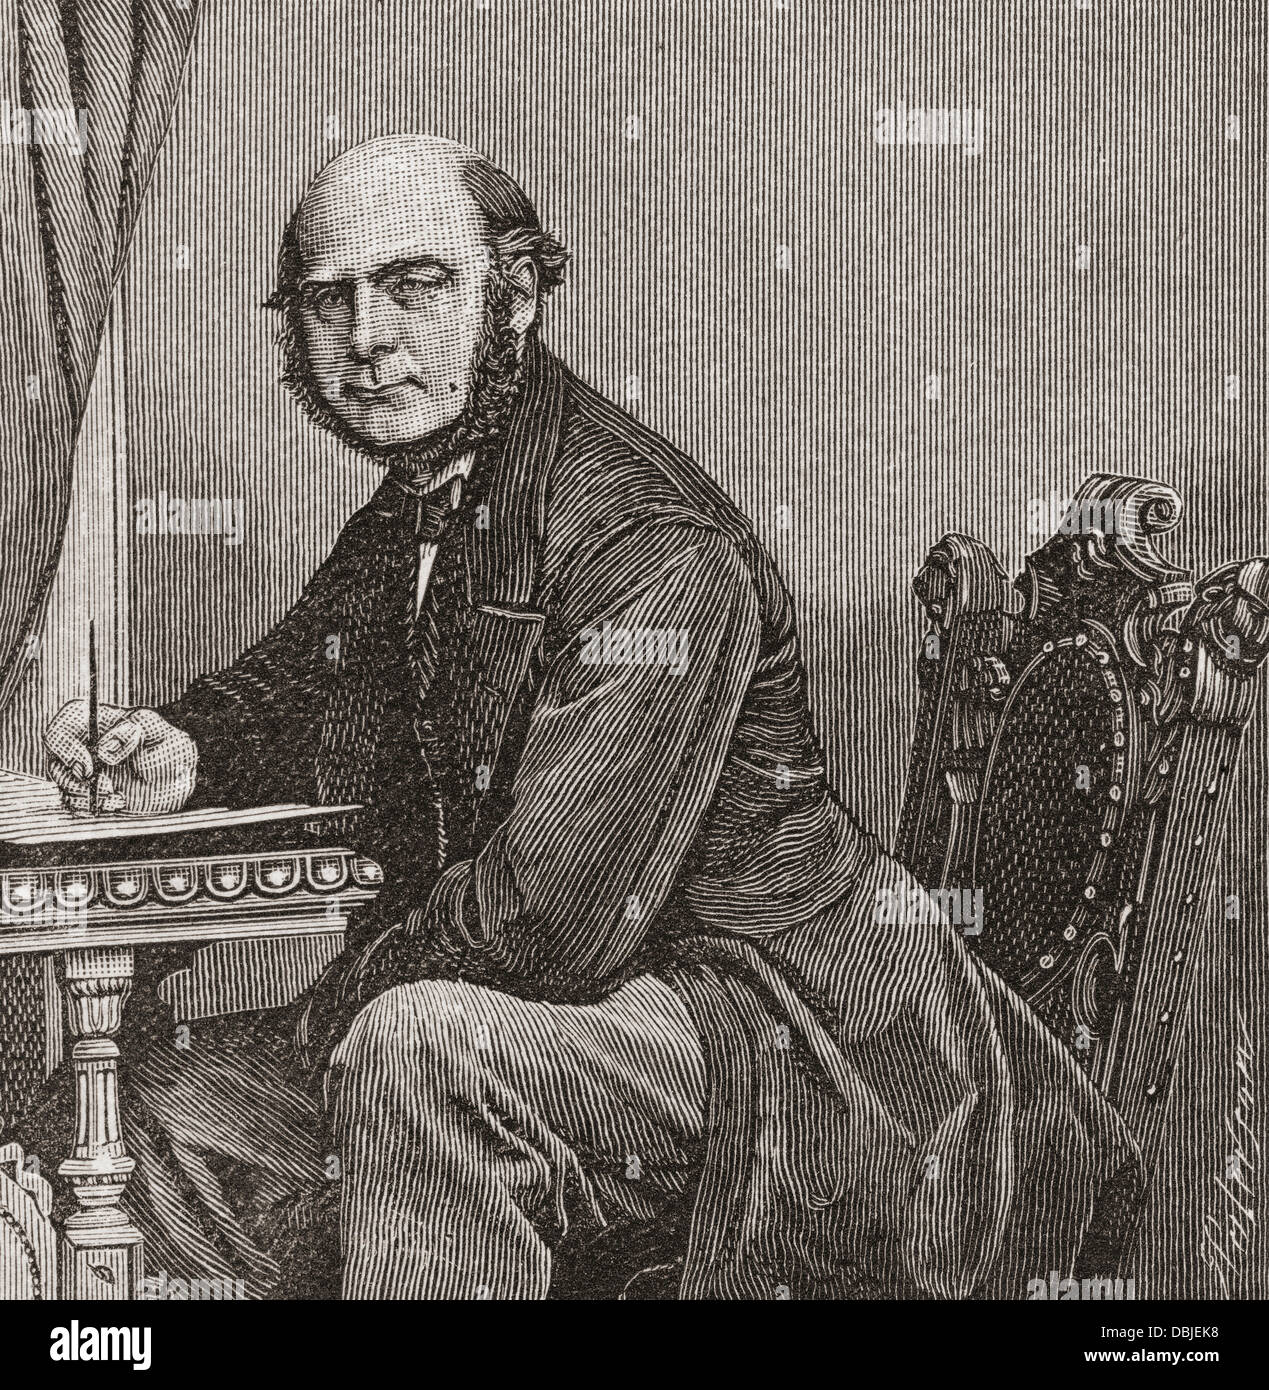 Sir Francis Galton, 1822 – 1911. English polymath. - Stock Image